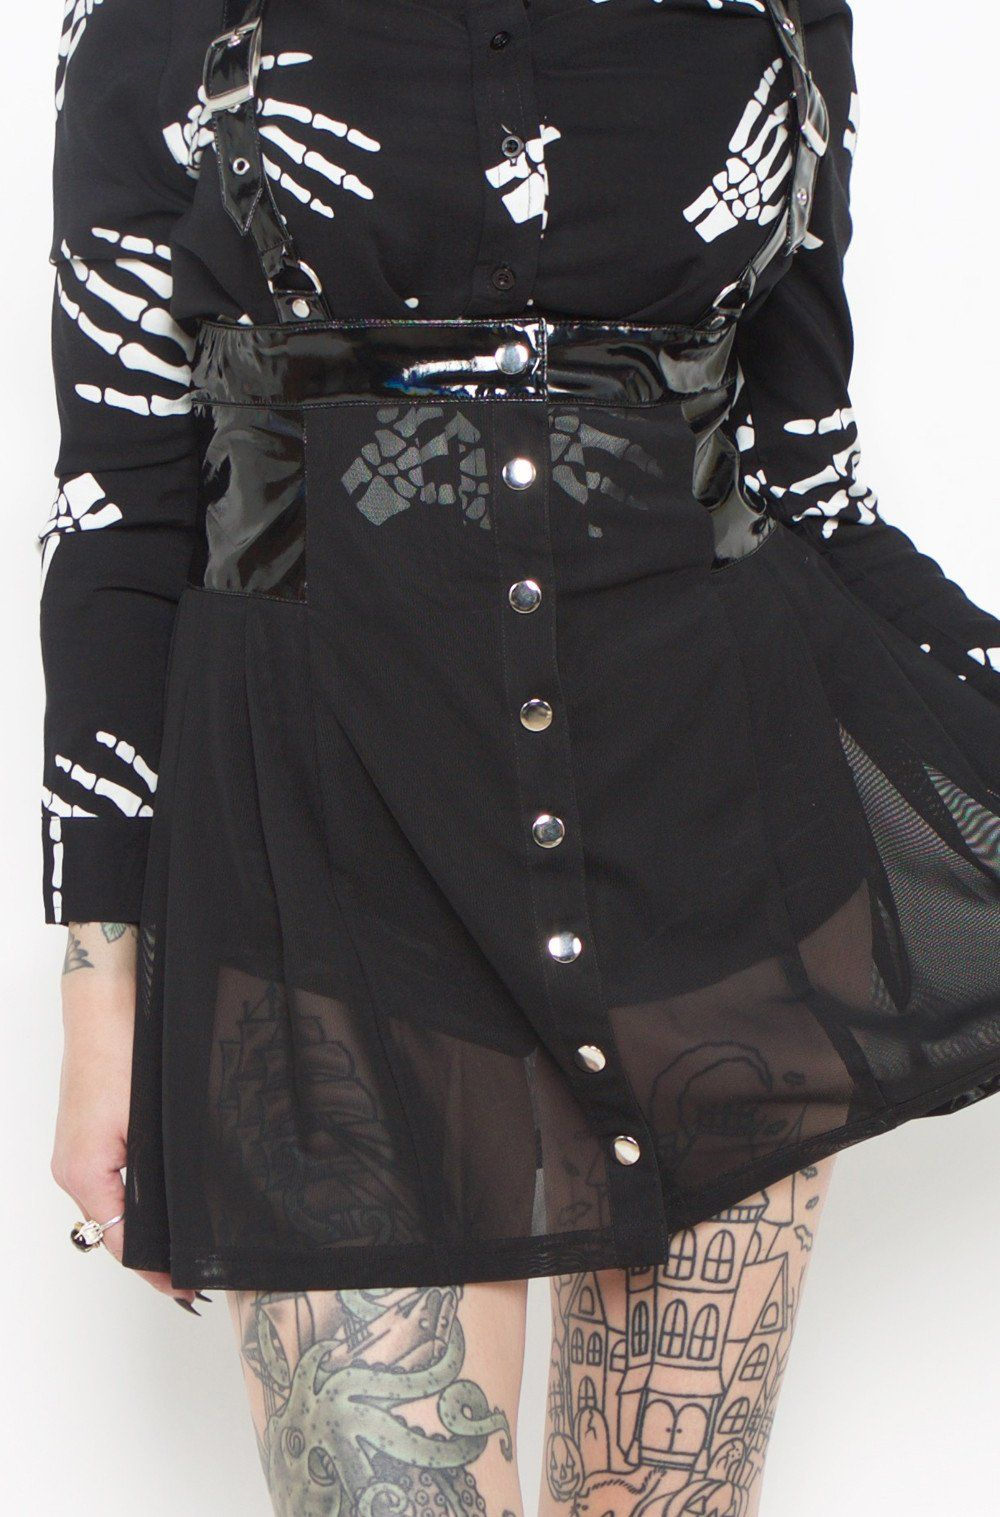 0662906ab5 Sunday School Dropout Jumper Skirt | Fashion and makeup wants ...